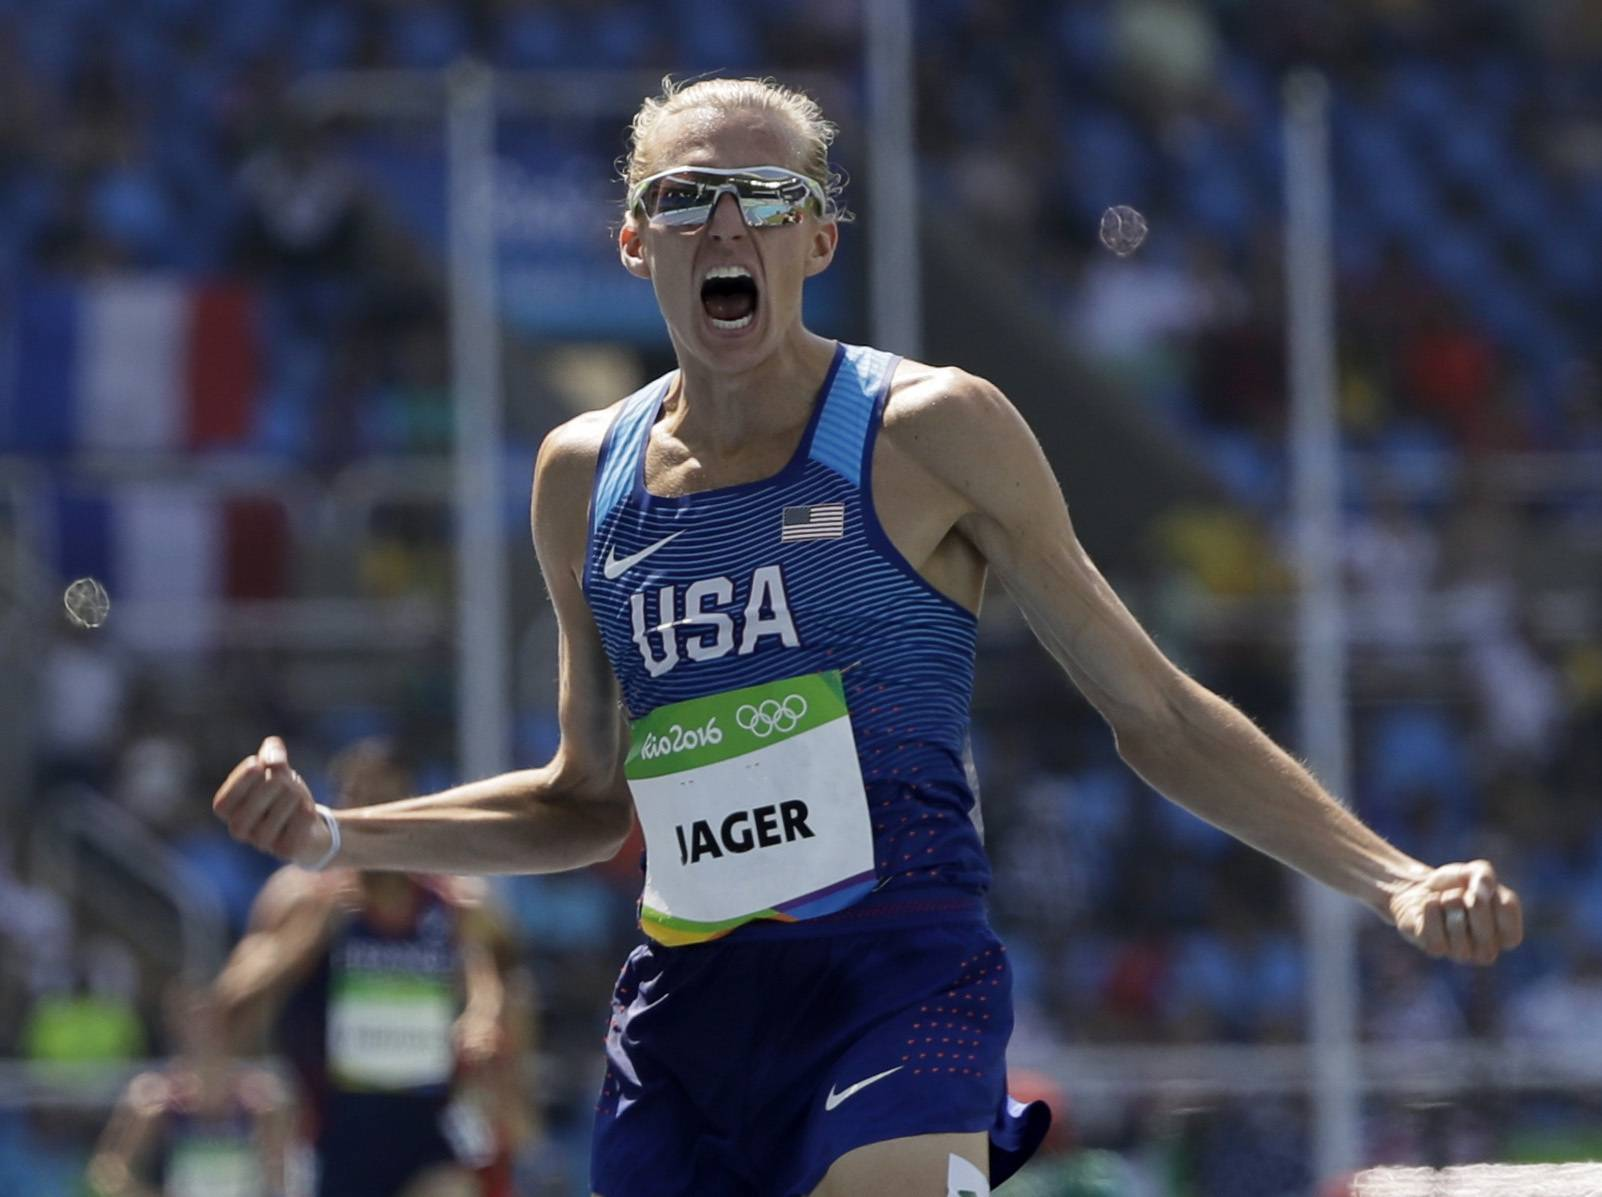 Algonquin native Evan Jager wins the silver medal in the men's 3,000-meter steeplechase final during the 2016 Summer Olympics in Rio de Janeiro, Brazil.